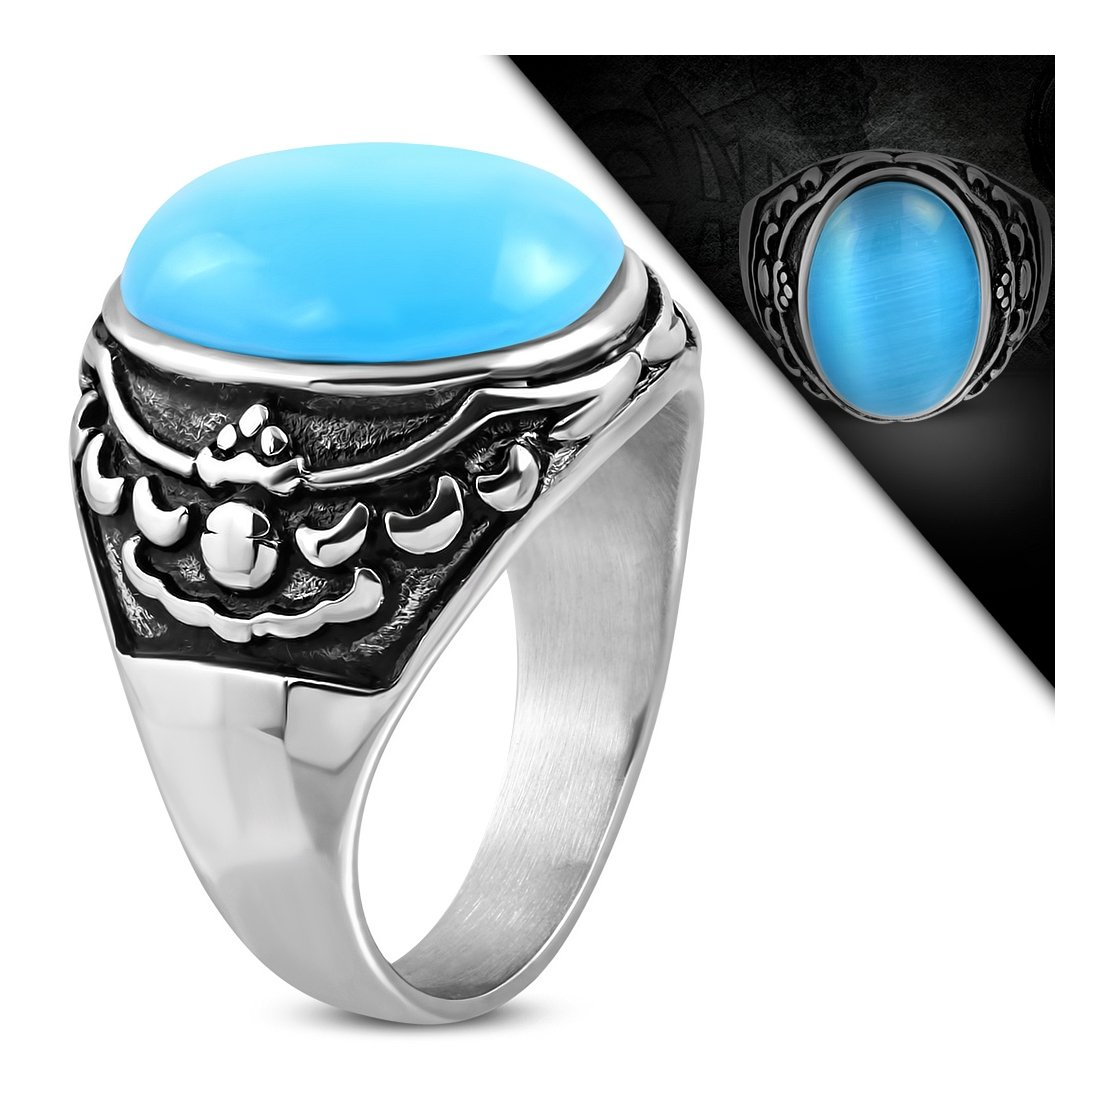 Stainless Steel 2 Color Eagle Wing Shank Bezel-set Oval Biker Ring with Cats Eyes Stone